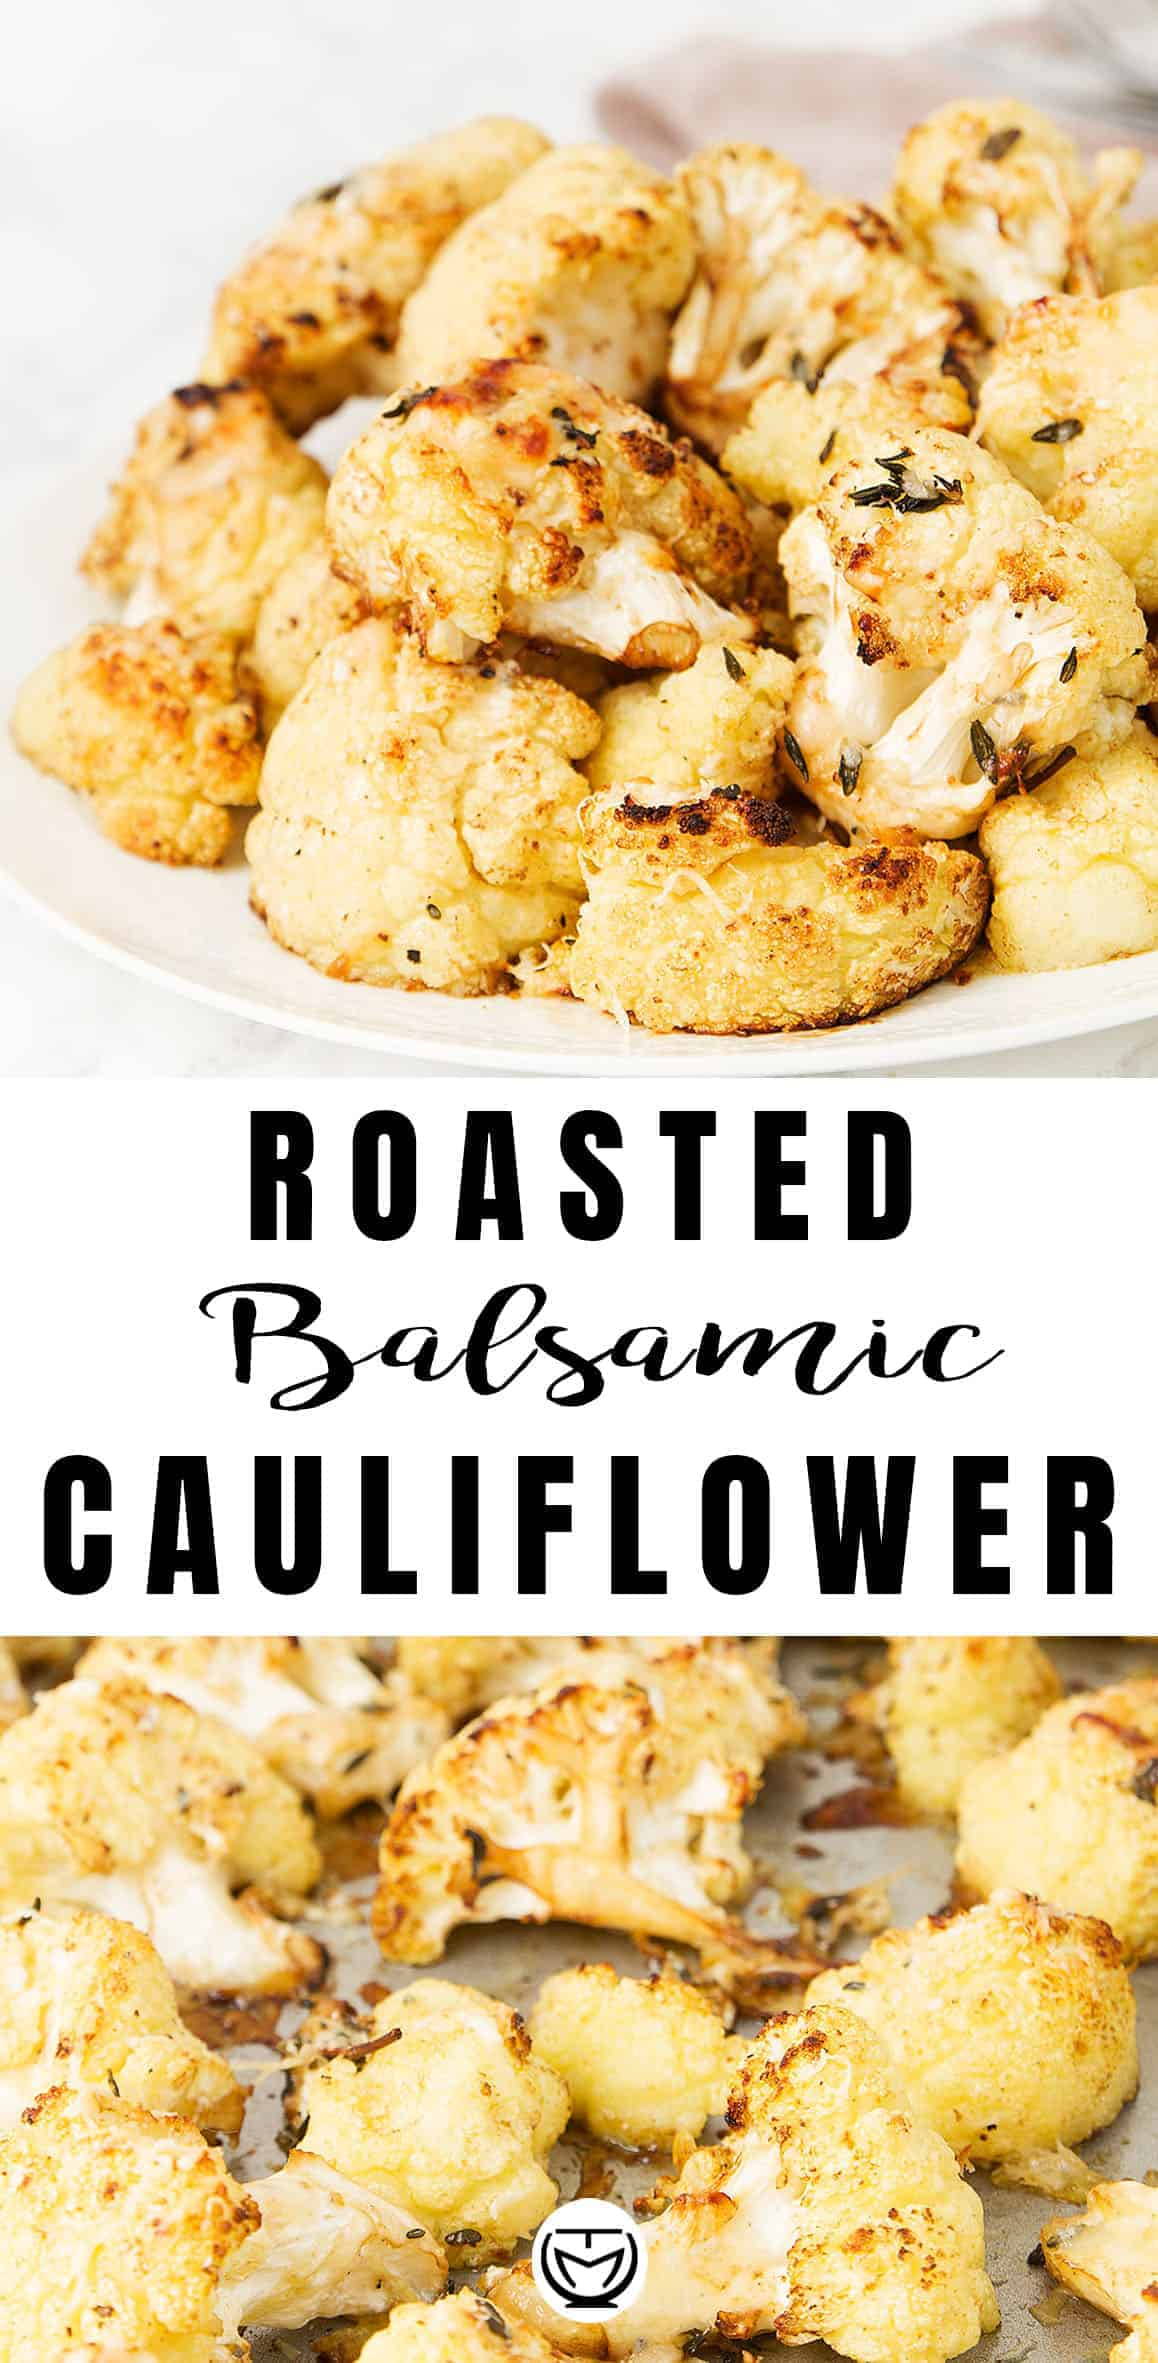 You will love the combination of tangy balsamic vinegar and toasty and caramelised parmesan cheese, it really makes the small cauliflower bites taste delicious. Plus, this flavorsome side dish is super easy to prepare, inexpensive and it comes loaded with a host of health benefits, from reducing cancer to boosting brain health. #roastedvegetables #cauliflowerrecipes #cheapmeals #healthydinnerrecipes